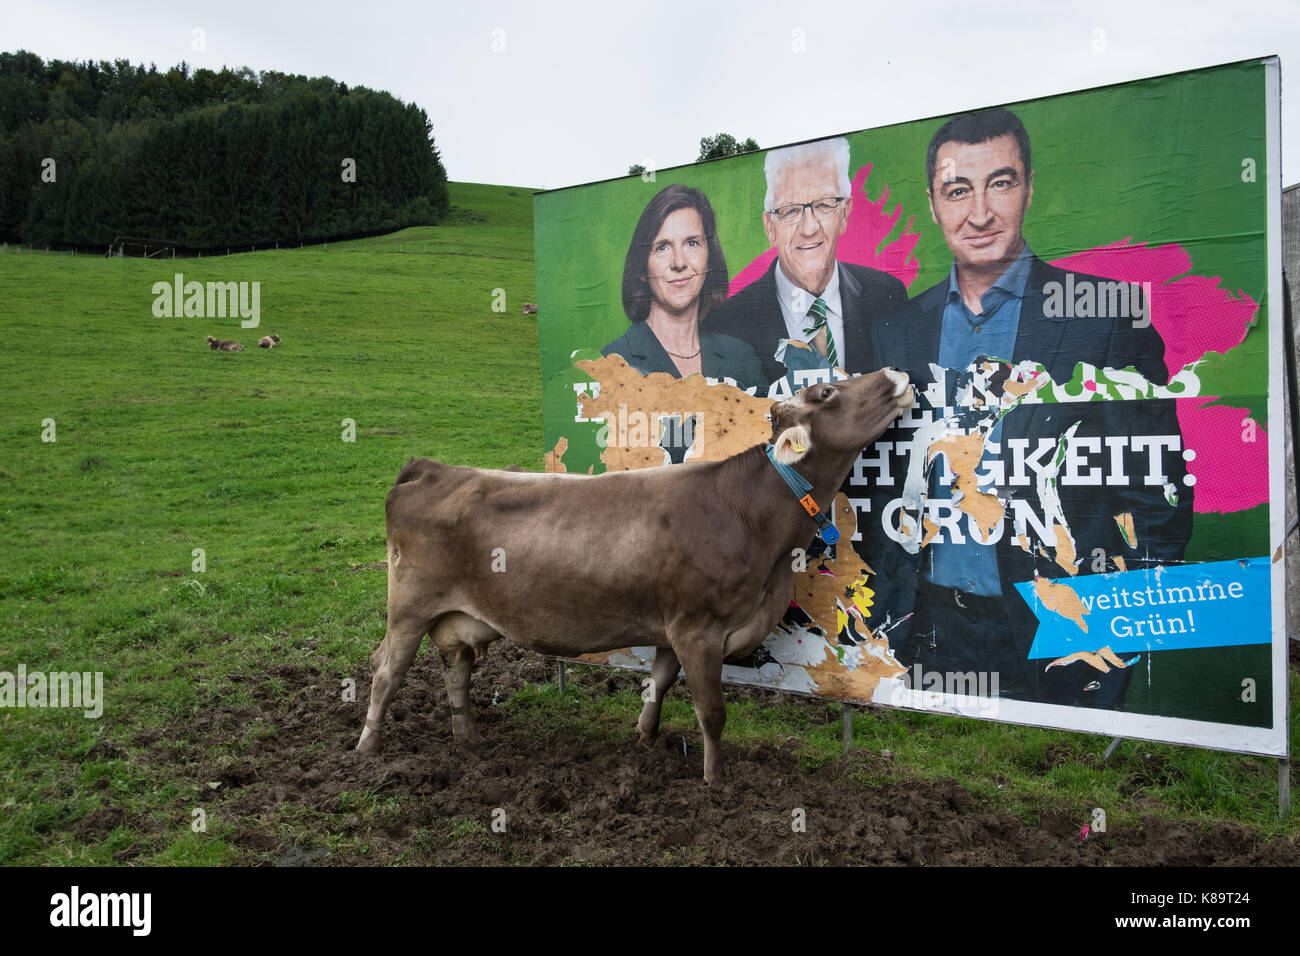 German Federal Elections 2017. A cow is eating The Greens 'Die Grünen' political party campaign poster - Stock Image